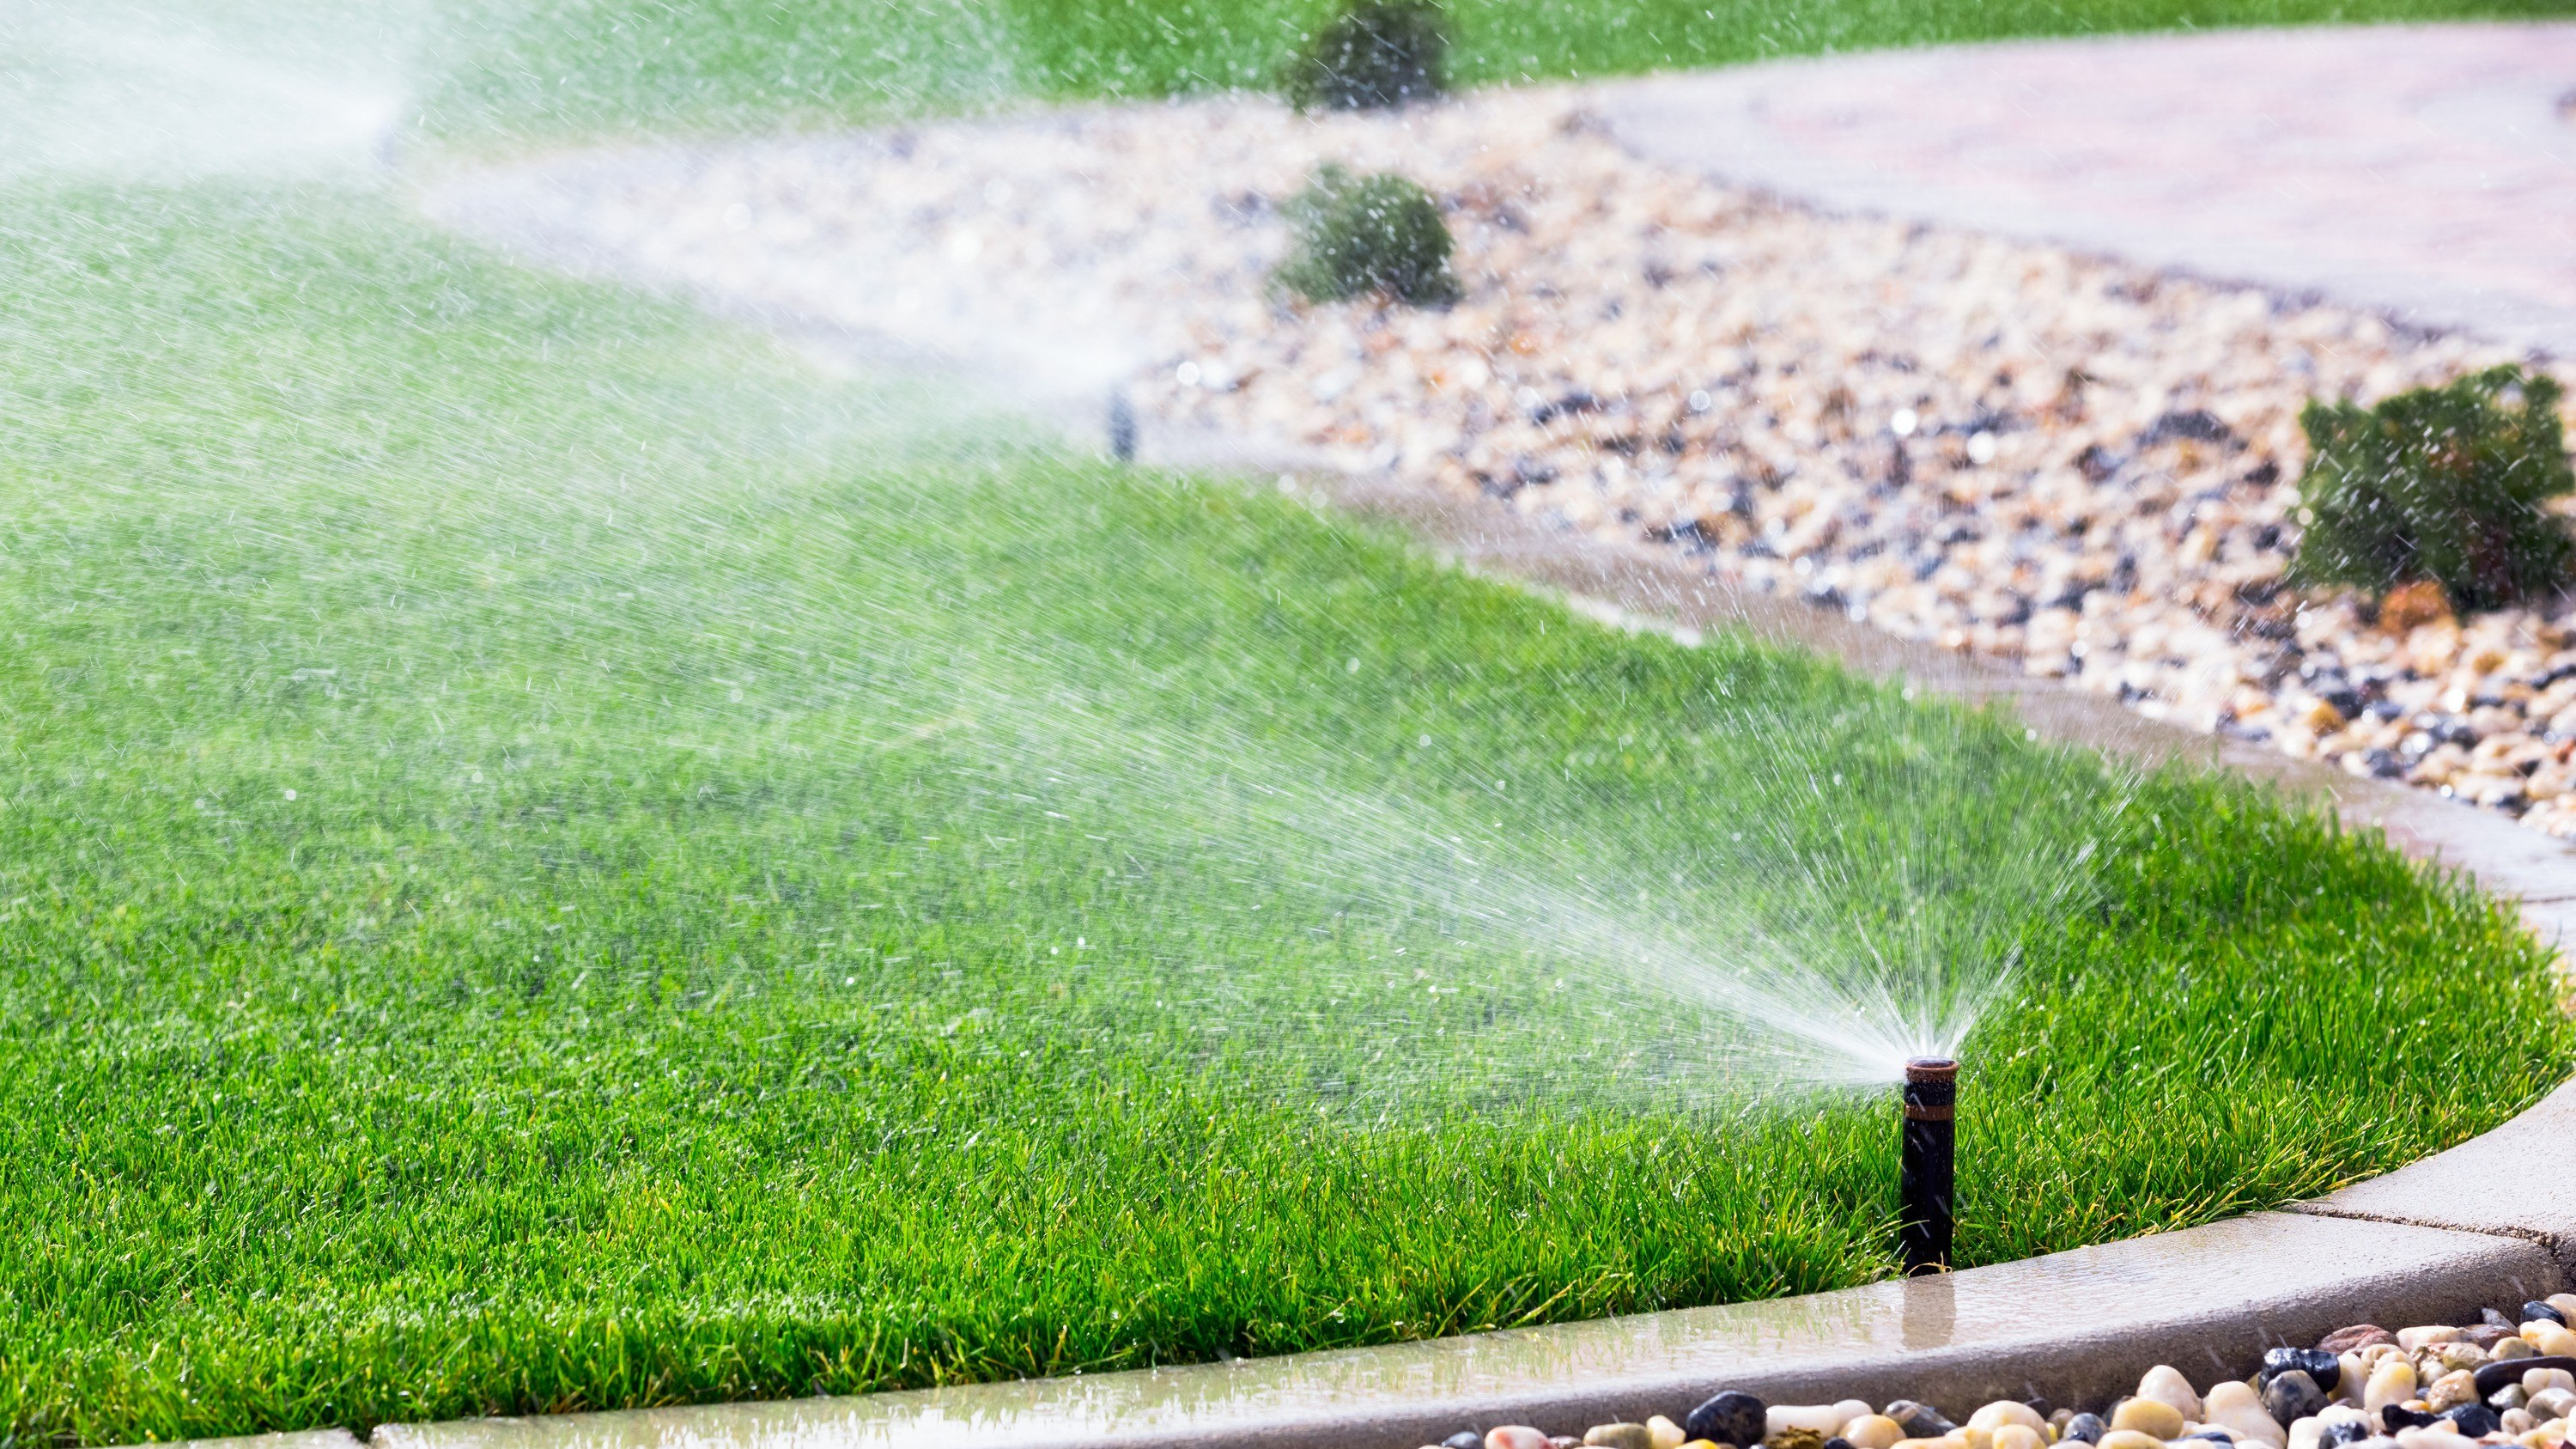 photodune-7155588-sprinklers-watering-grass-l-e1430526220145